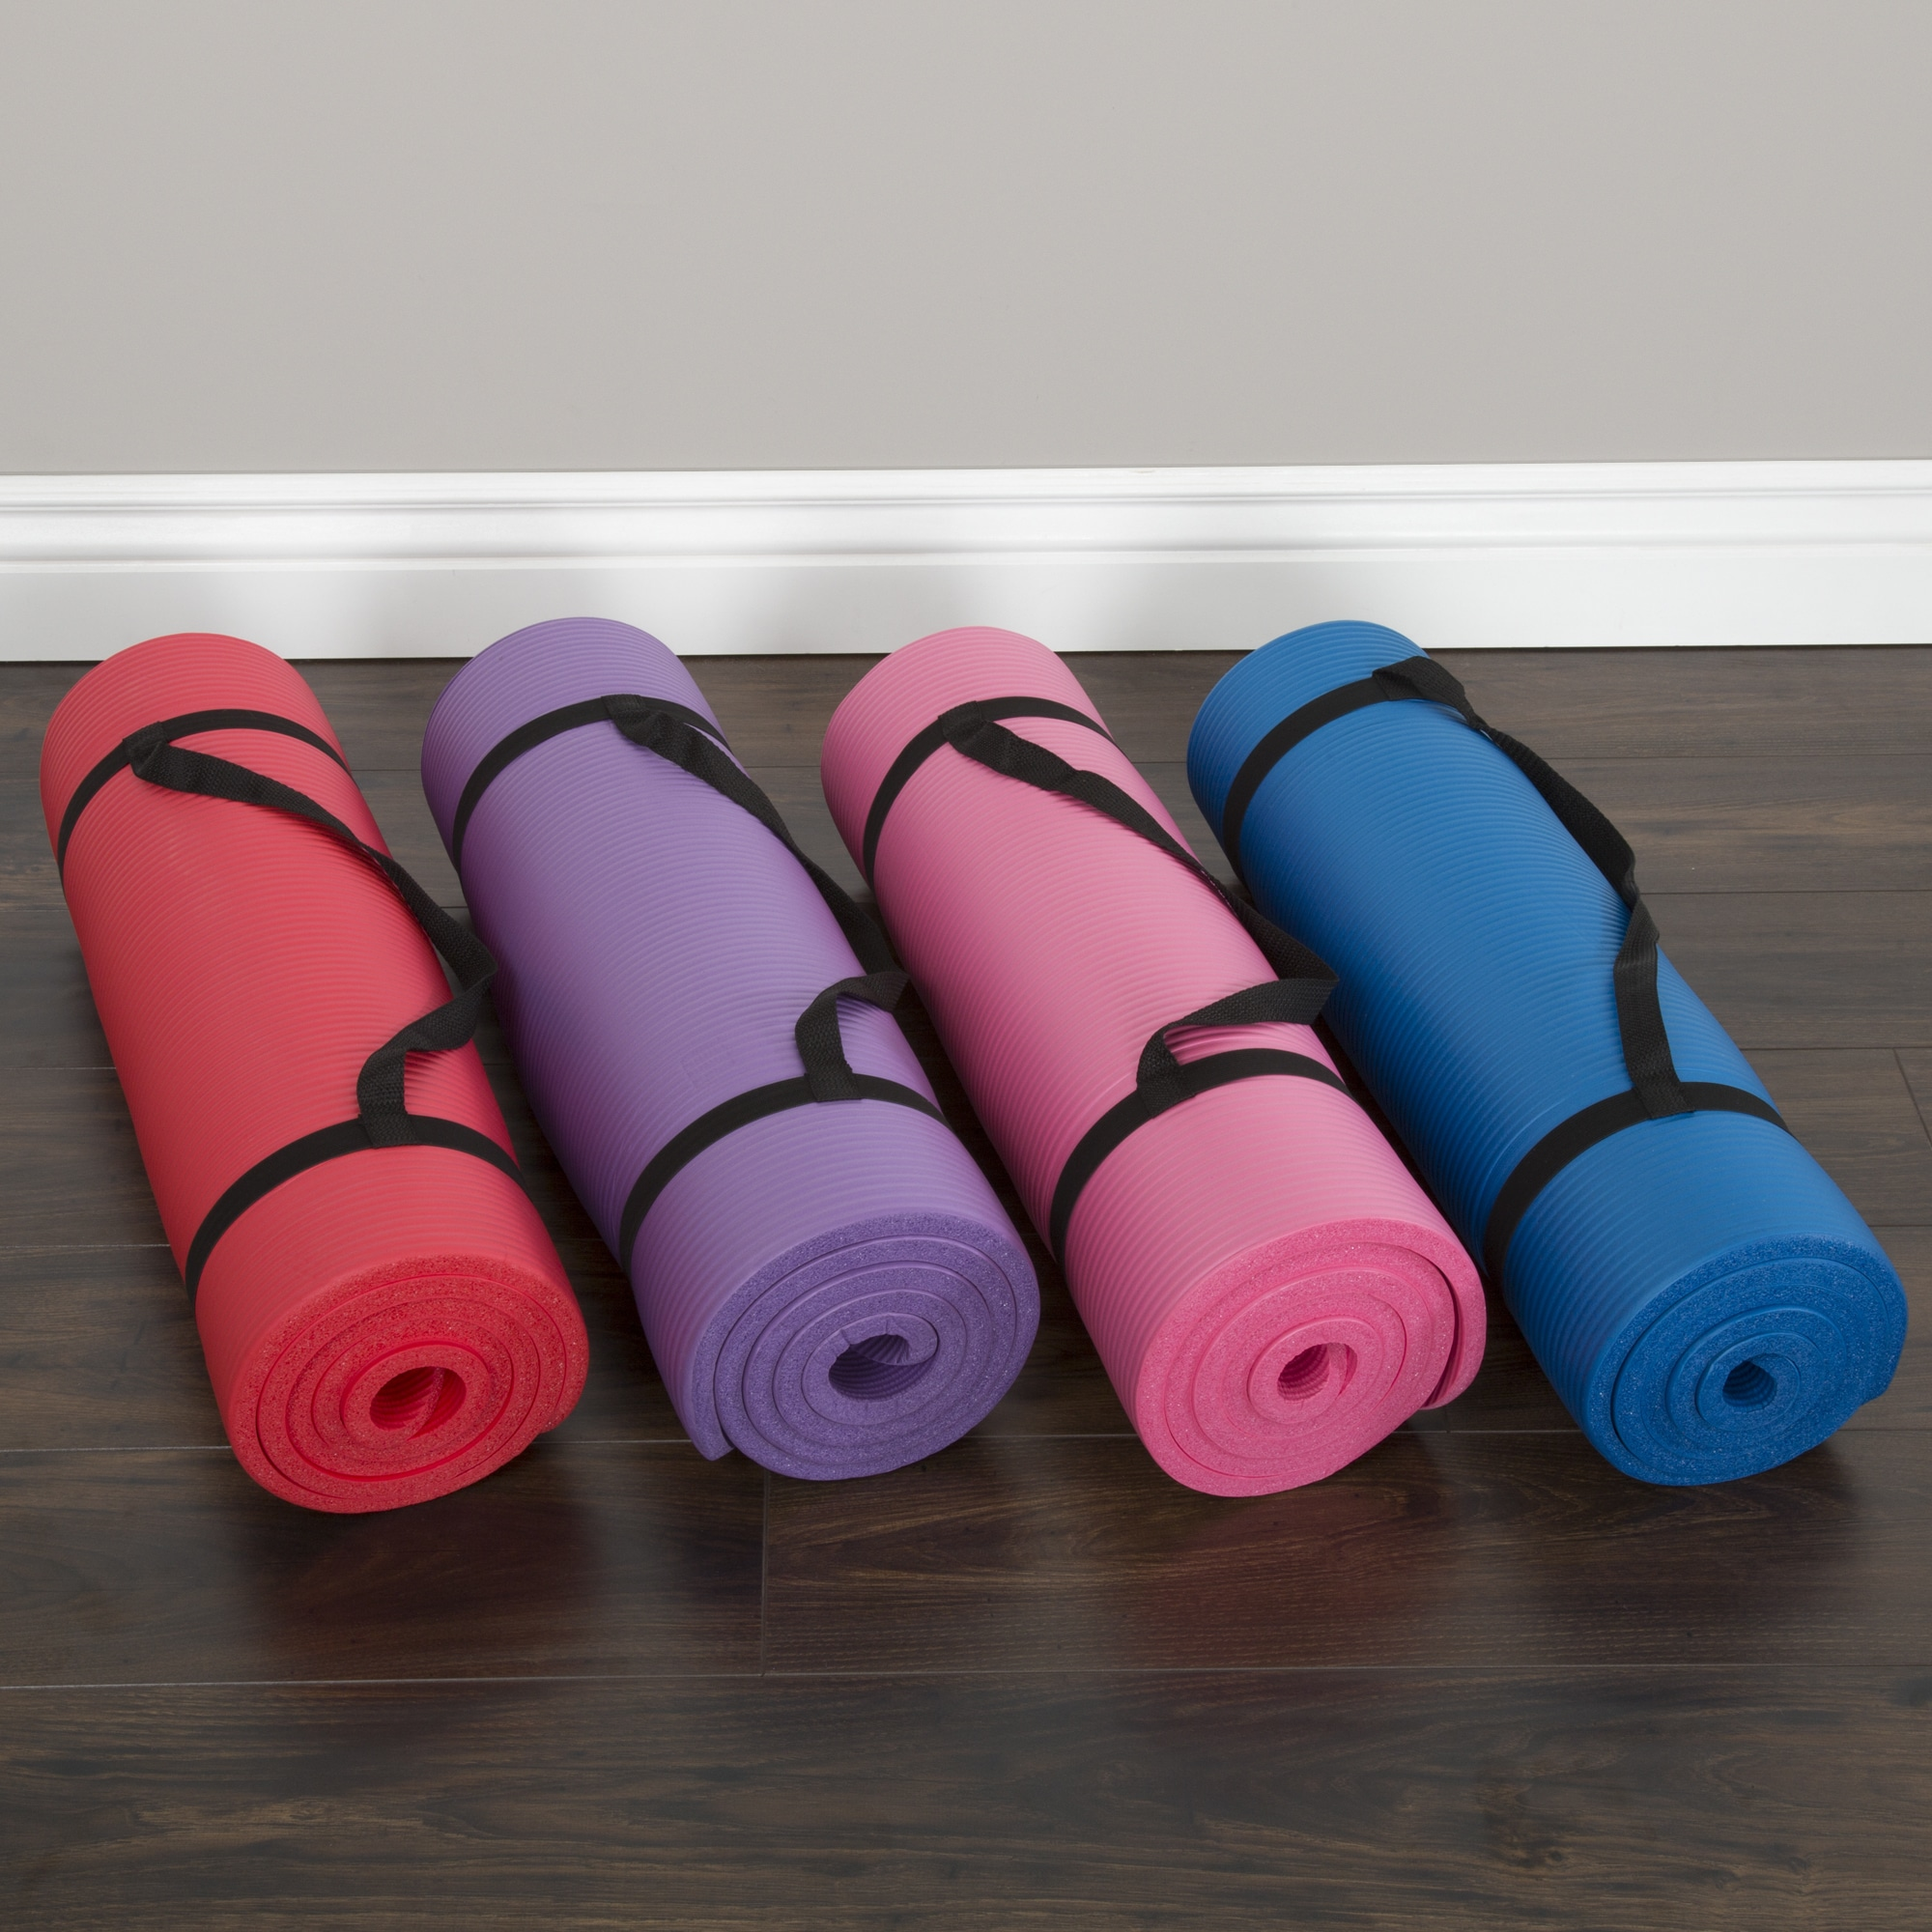 Wakeman Fitness Extra Thick Yoga Exercise Mat 71 L X 24 W 5 H Free Shipping On Orders Over 45 12306015